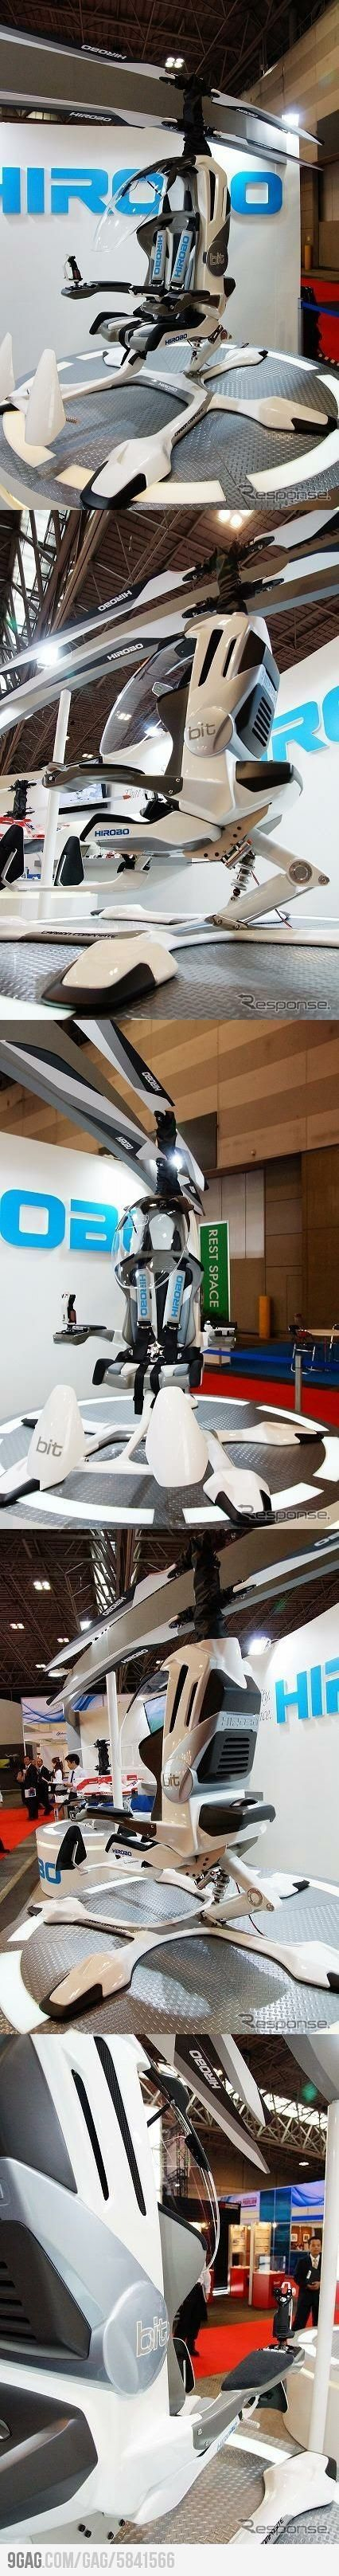 Hirobo silent mini electric helicopters that travel at 100km/h (62 mph)